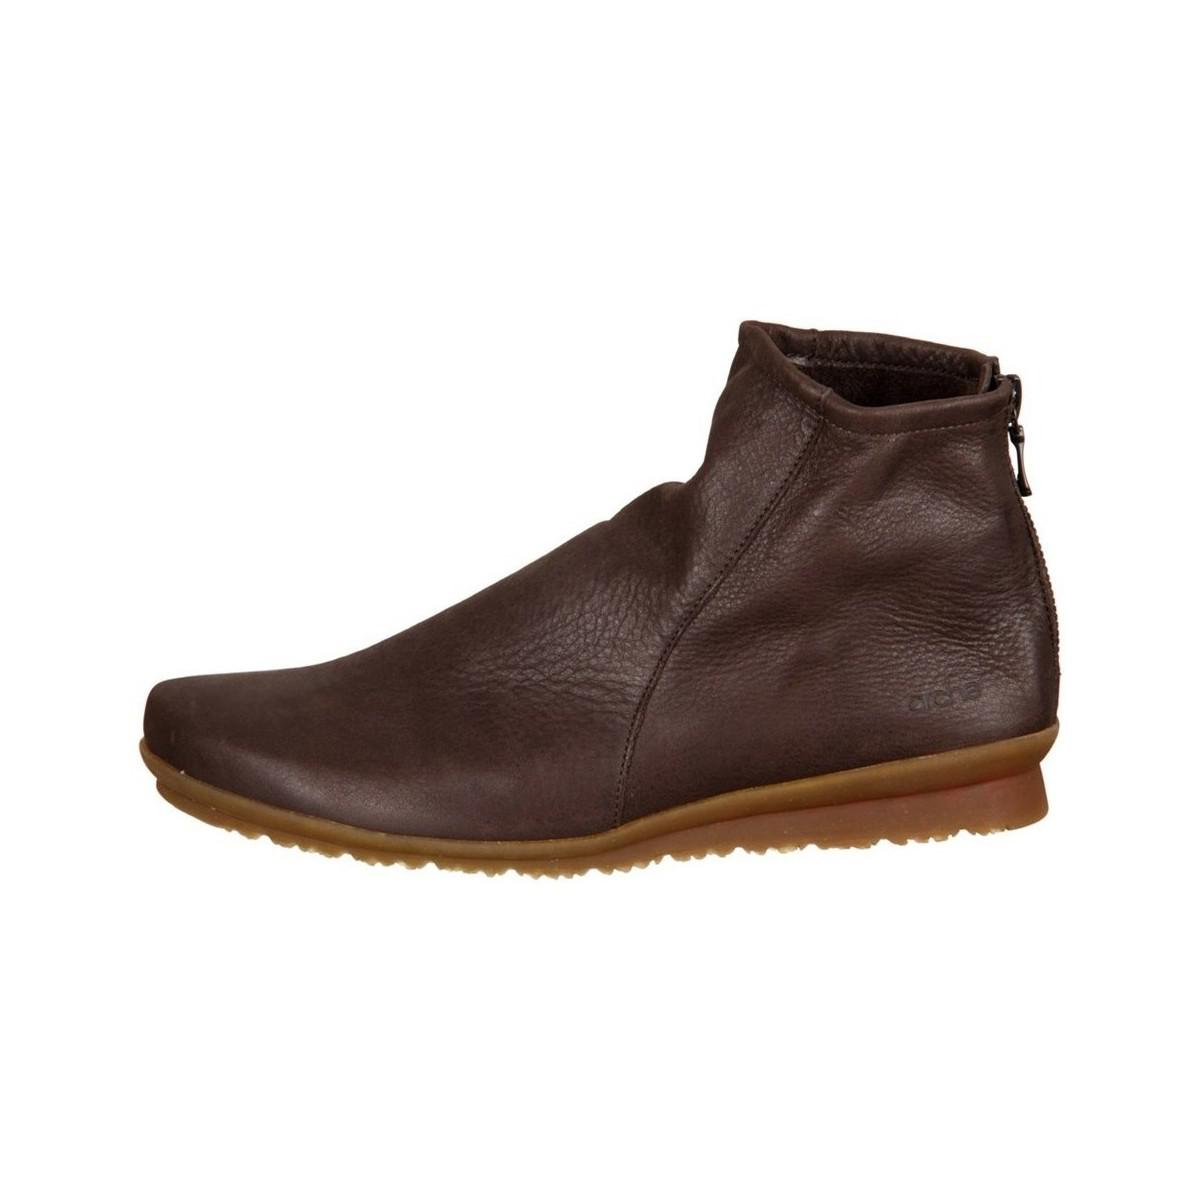 Largest Supplier Cheap Price Arche Baryky Baryky TR Truffe Nubuck women's Mid Boots in Nicekicks Cheap Online Outlet 2018 Clearance Latest Free Shipping Classic wnjCsgJ